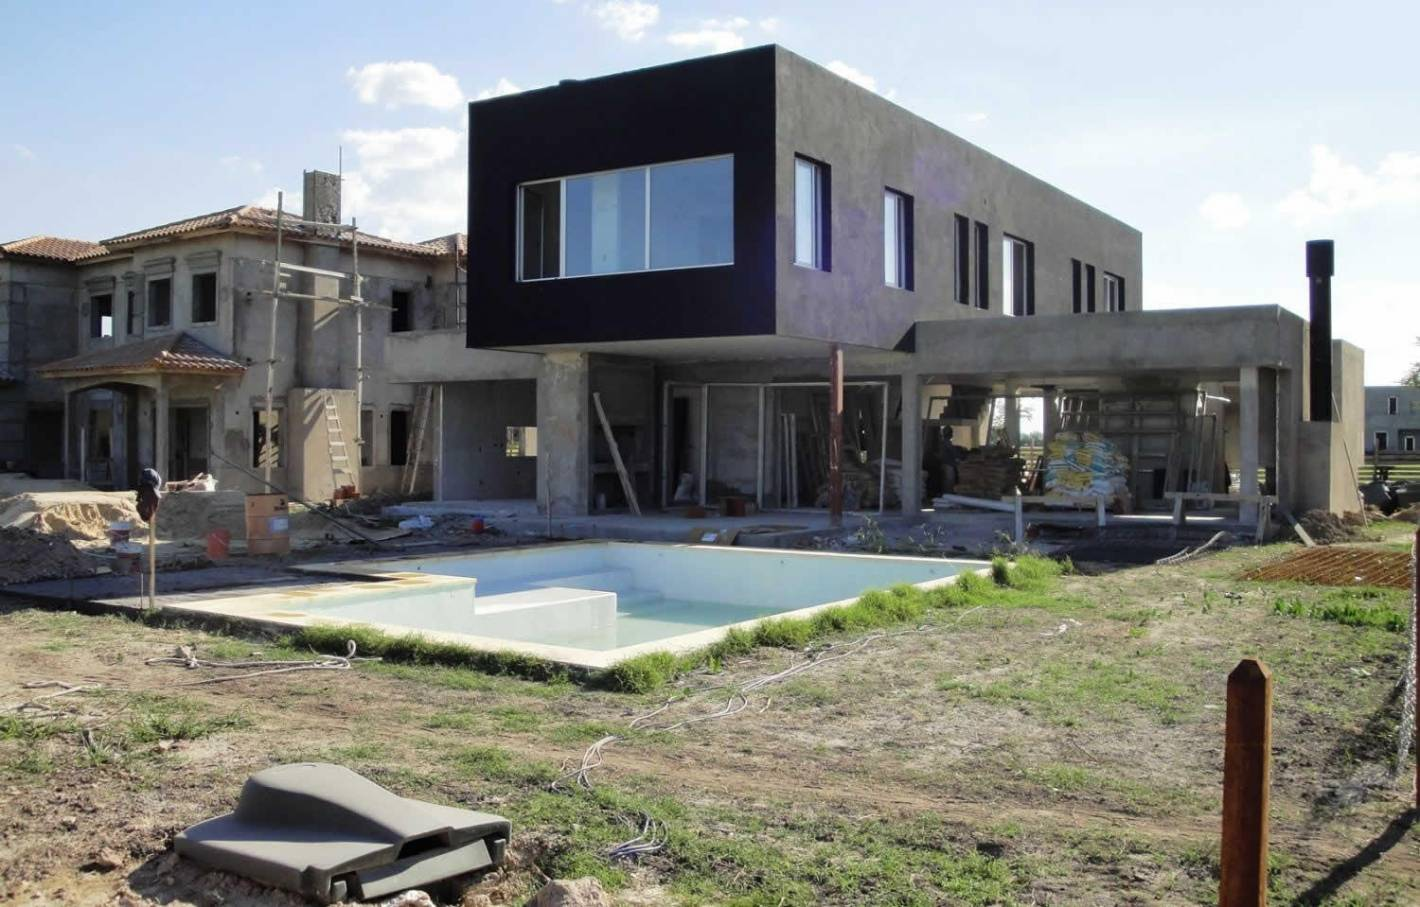 Cu nto cuesta construir una casa vip mendoza post for De construir casas